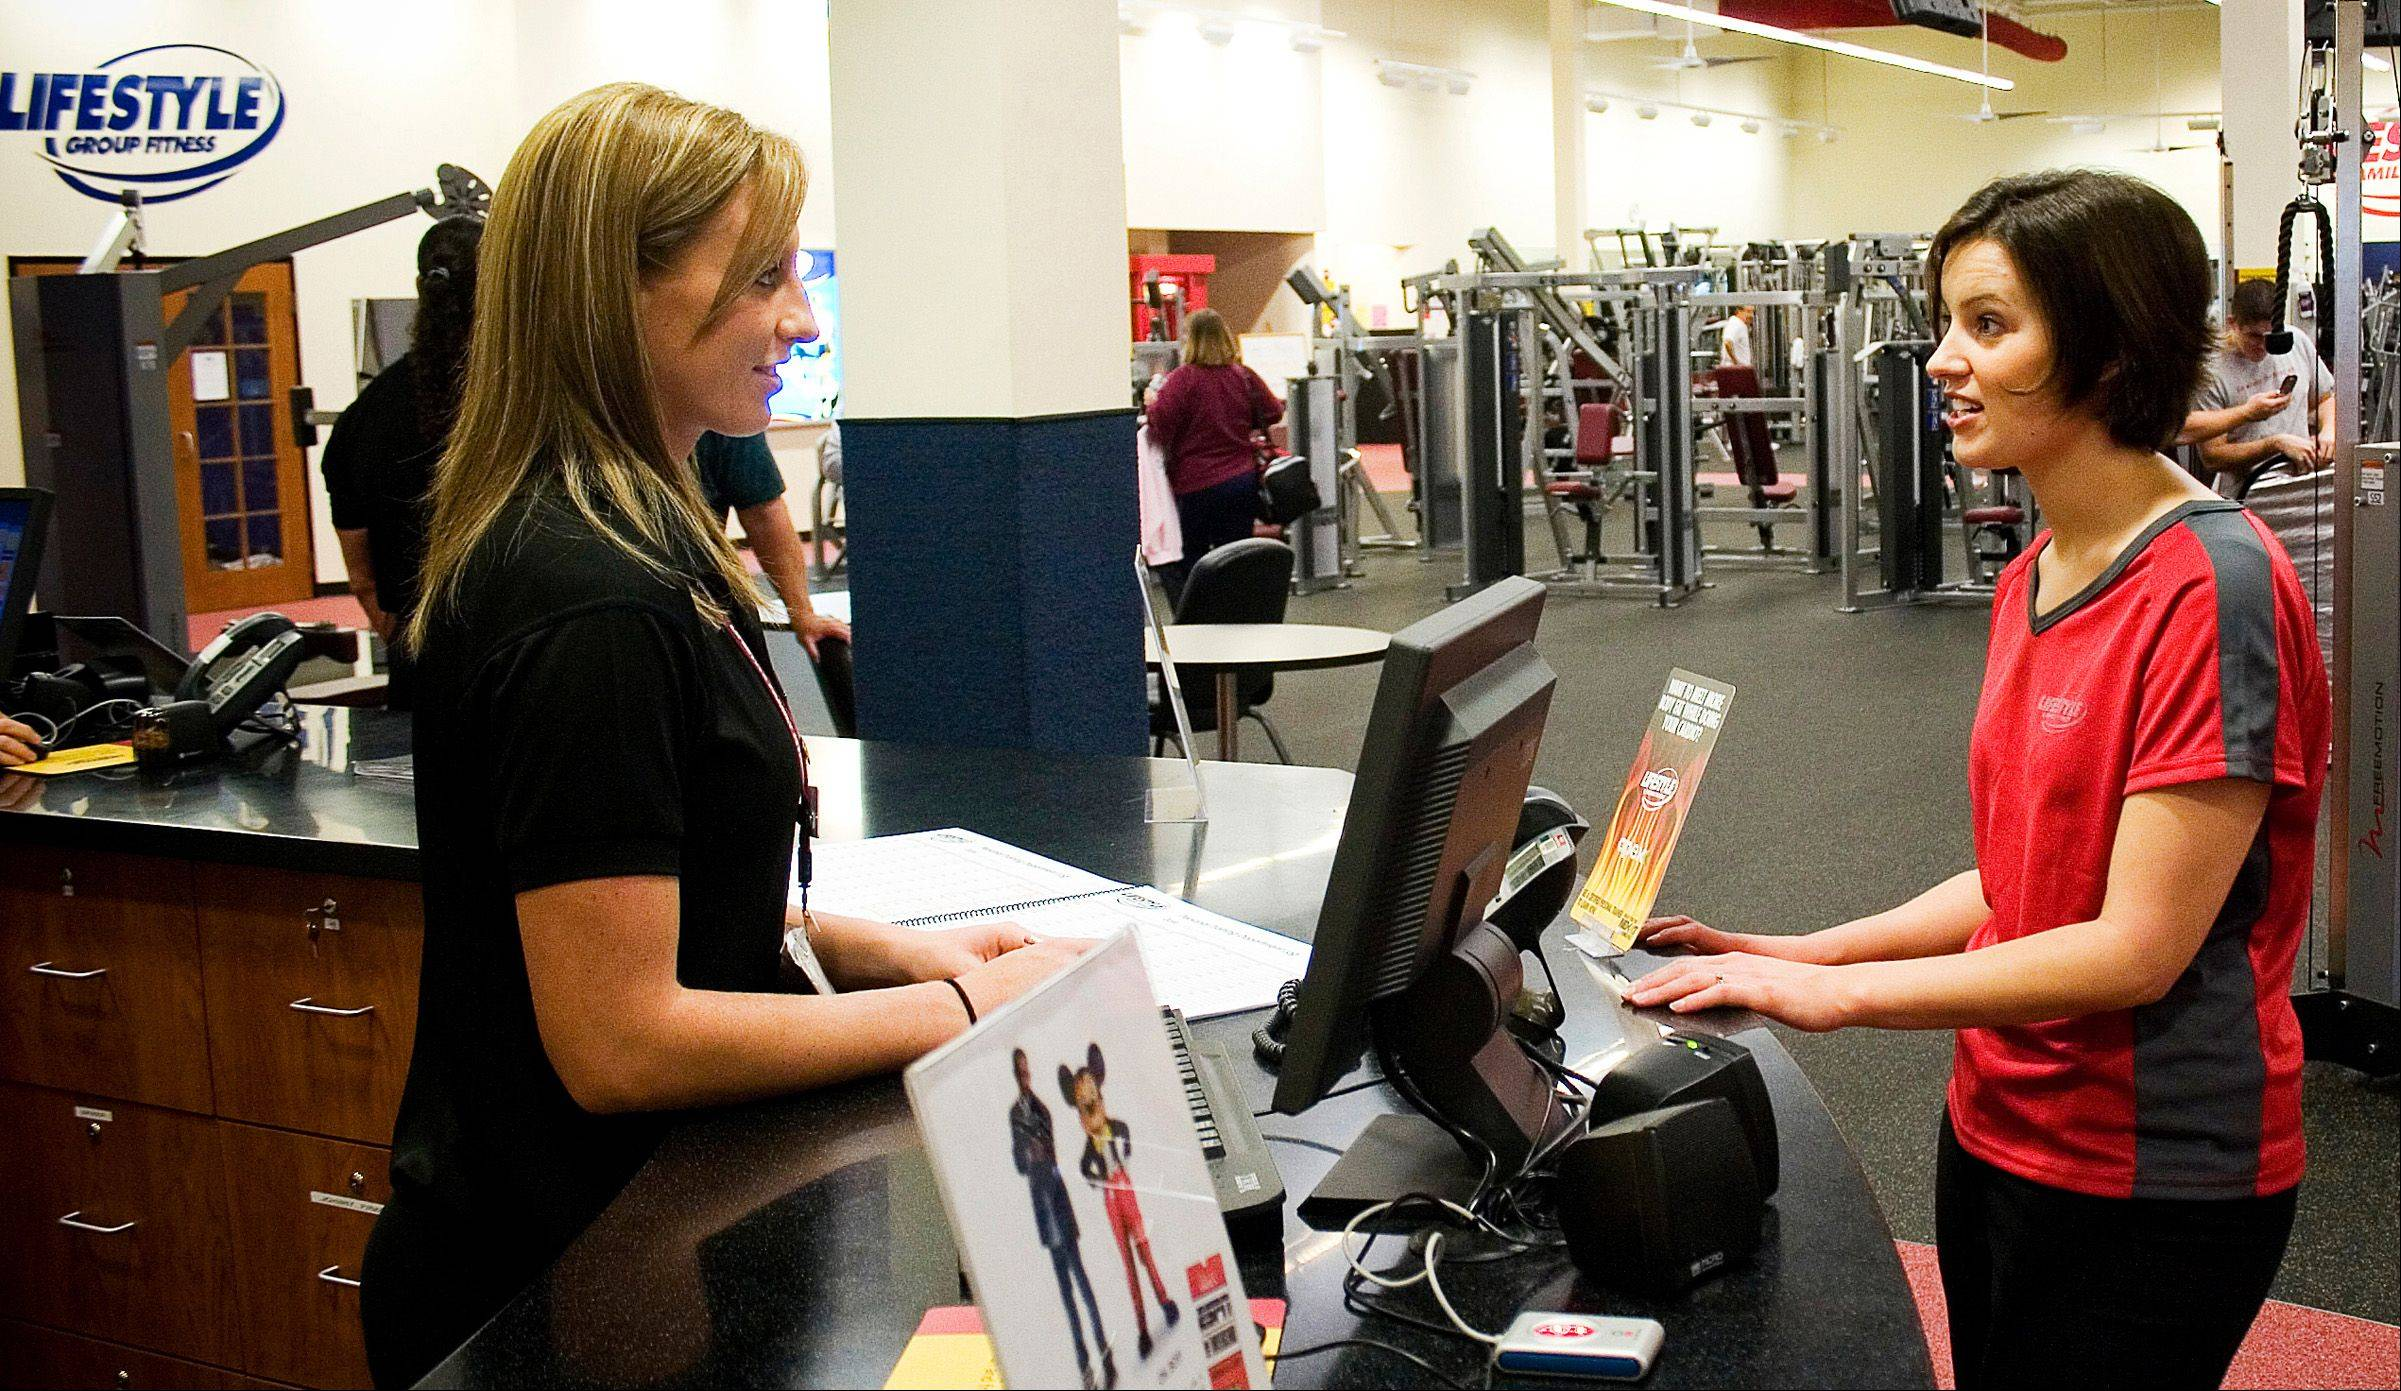 Emily Scherpf, left, and Kate Rahman negotiate a personal training package at the Lifestyles Family Fitness in Valrico, Fla.